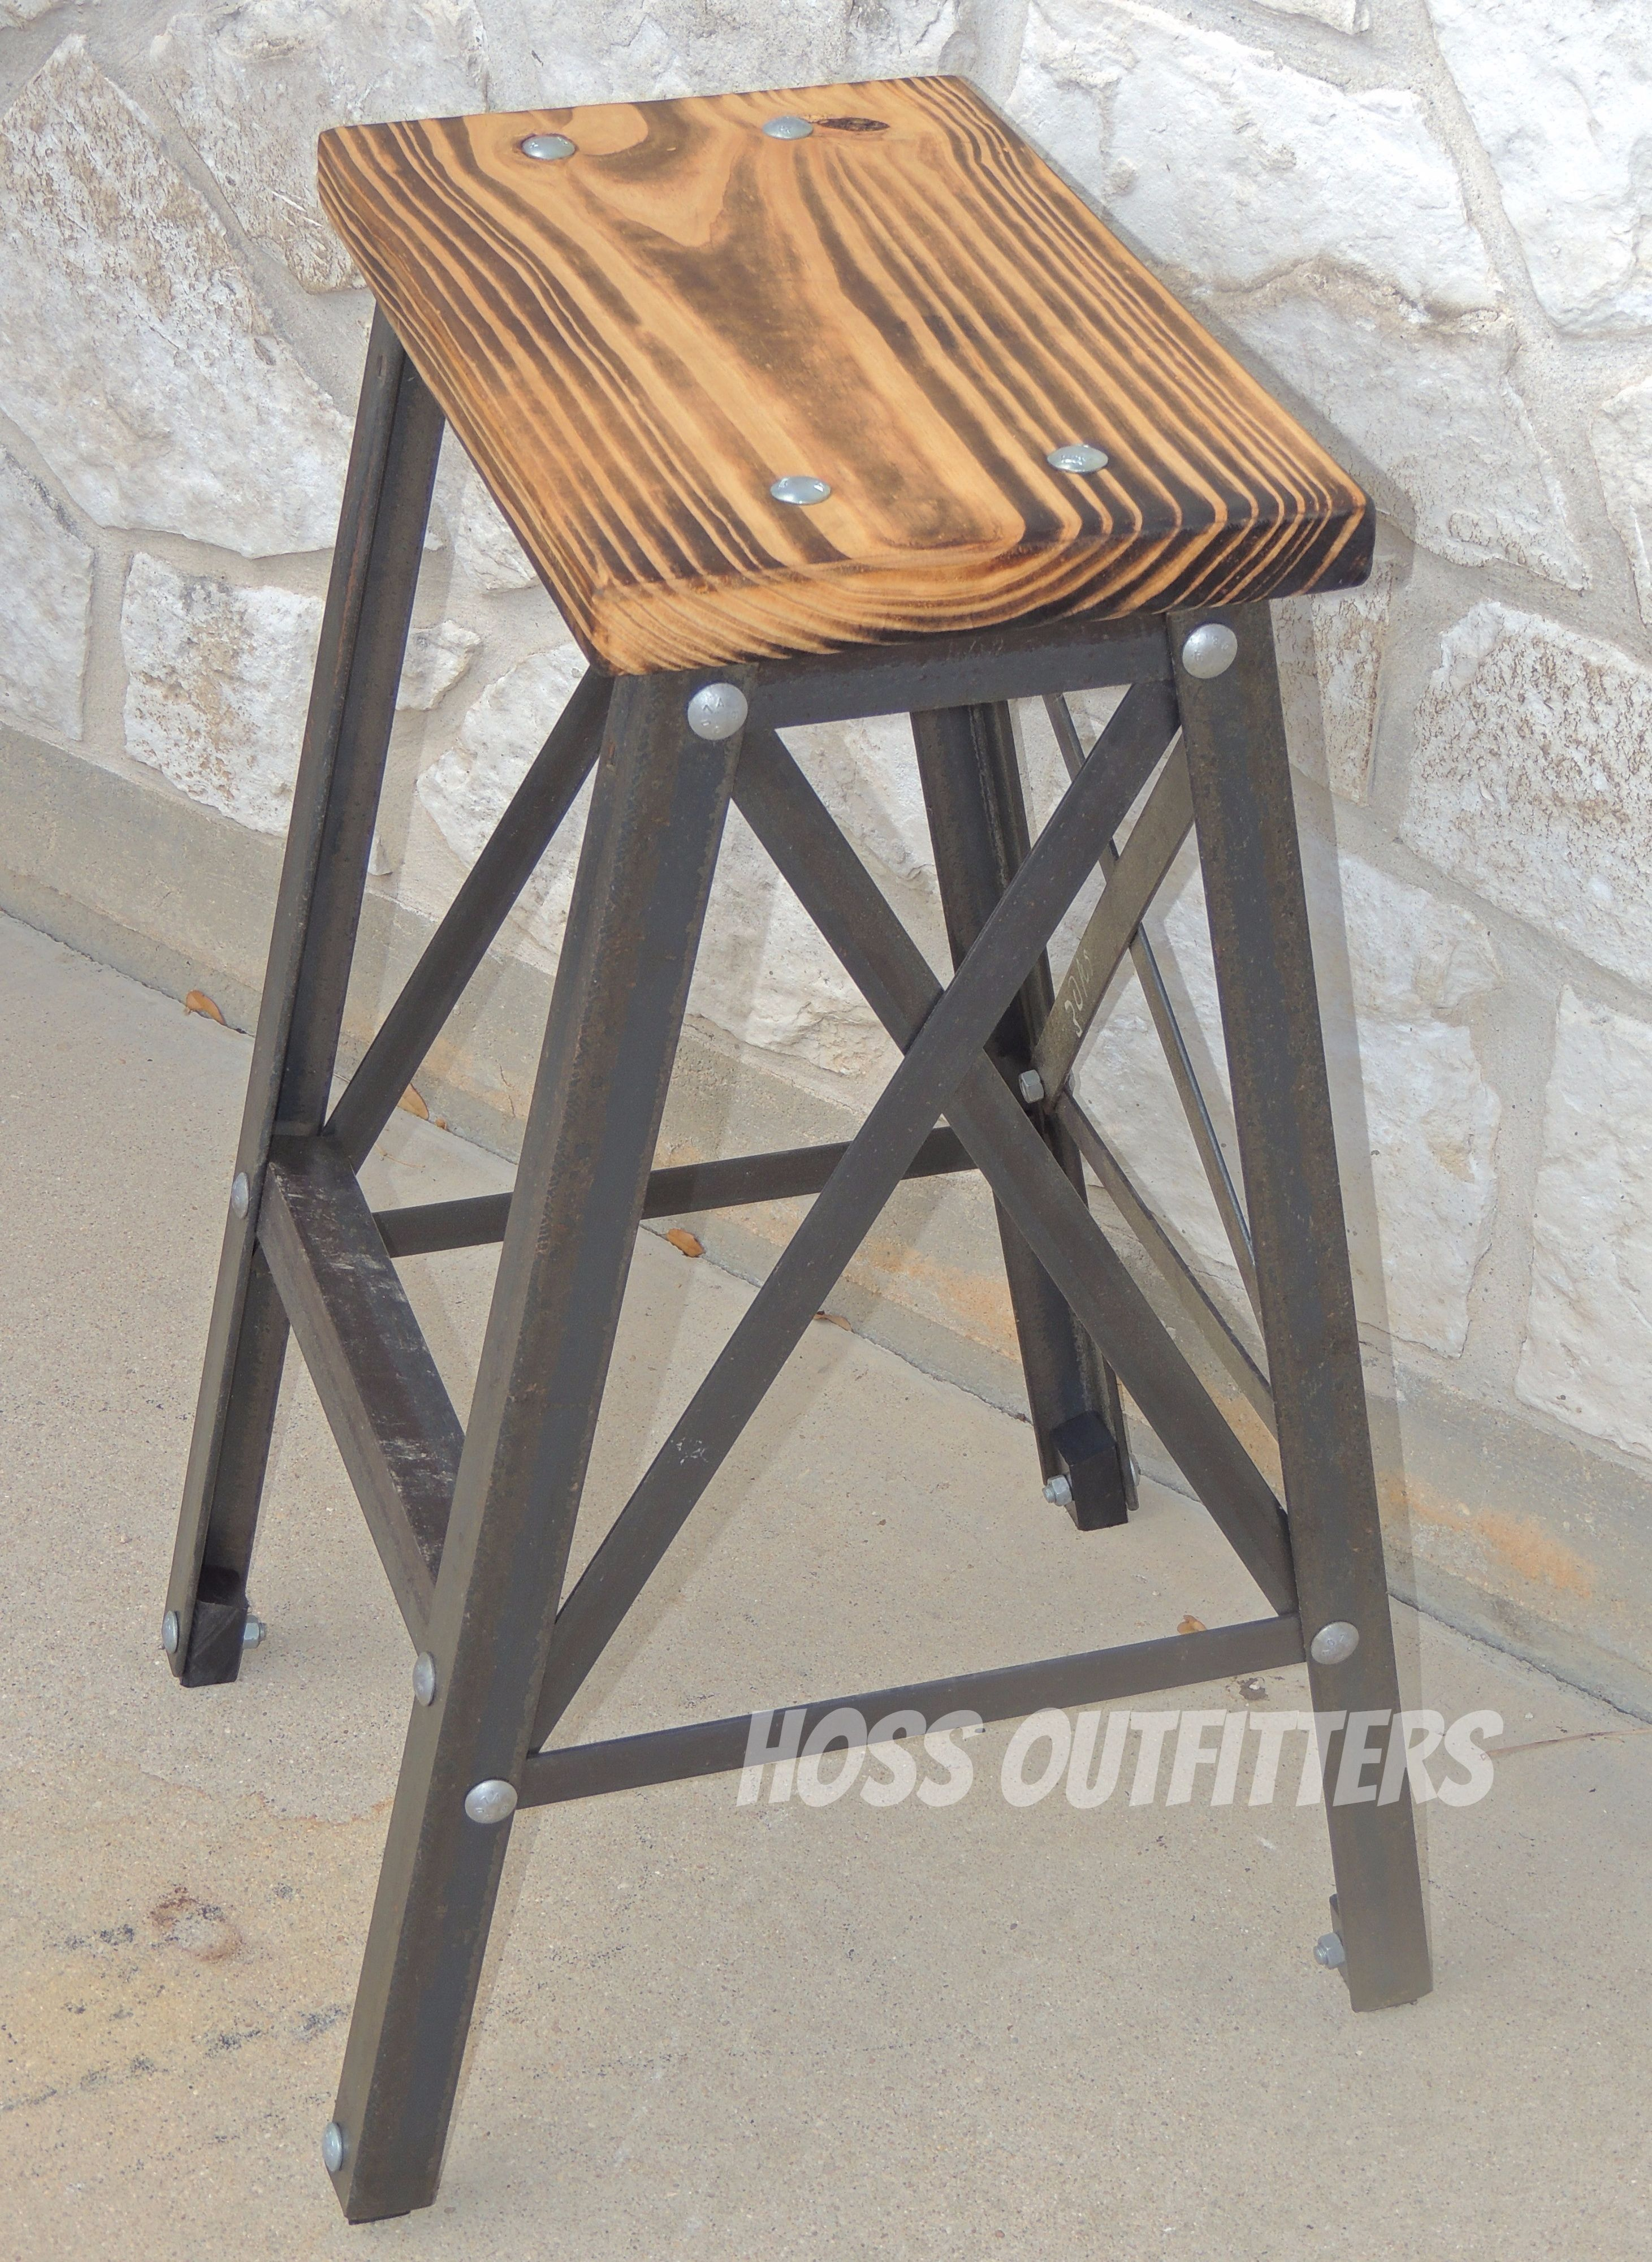 4 Pack 30 Inch Industrial Antique Vintage Rustic Metal Bar Stool With Hand Carved Wood Top Set Of 4 Tabouret De Comptoir Tabouret De Bar Tabourets De Bar Modernes